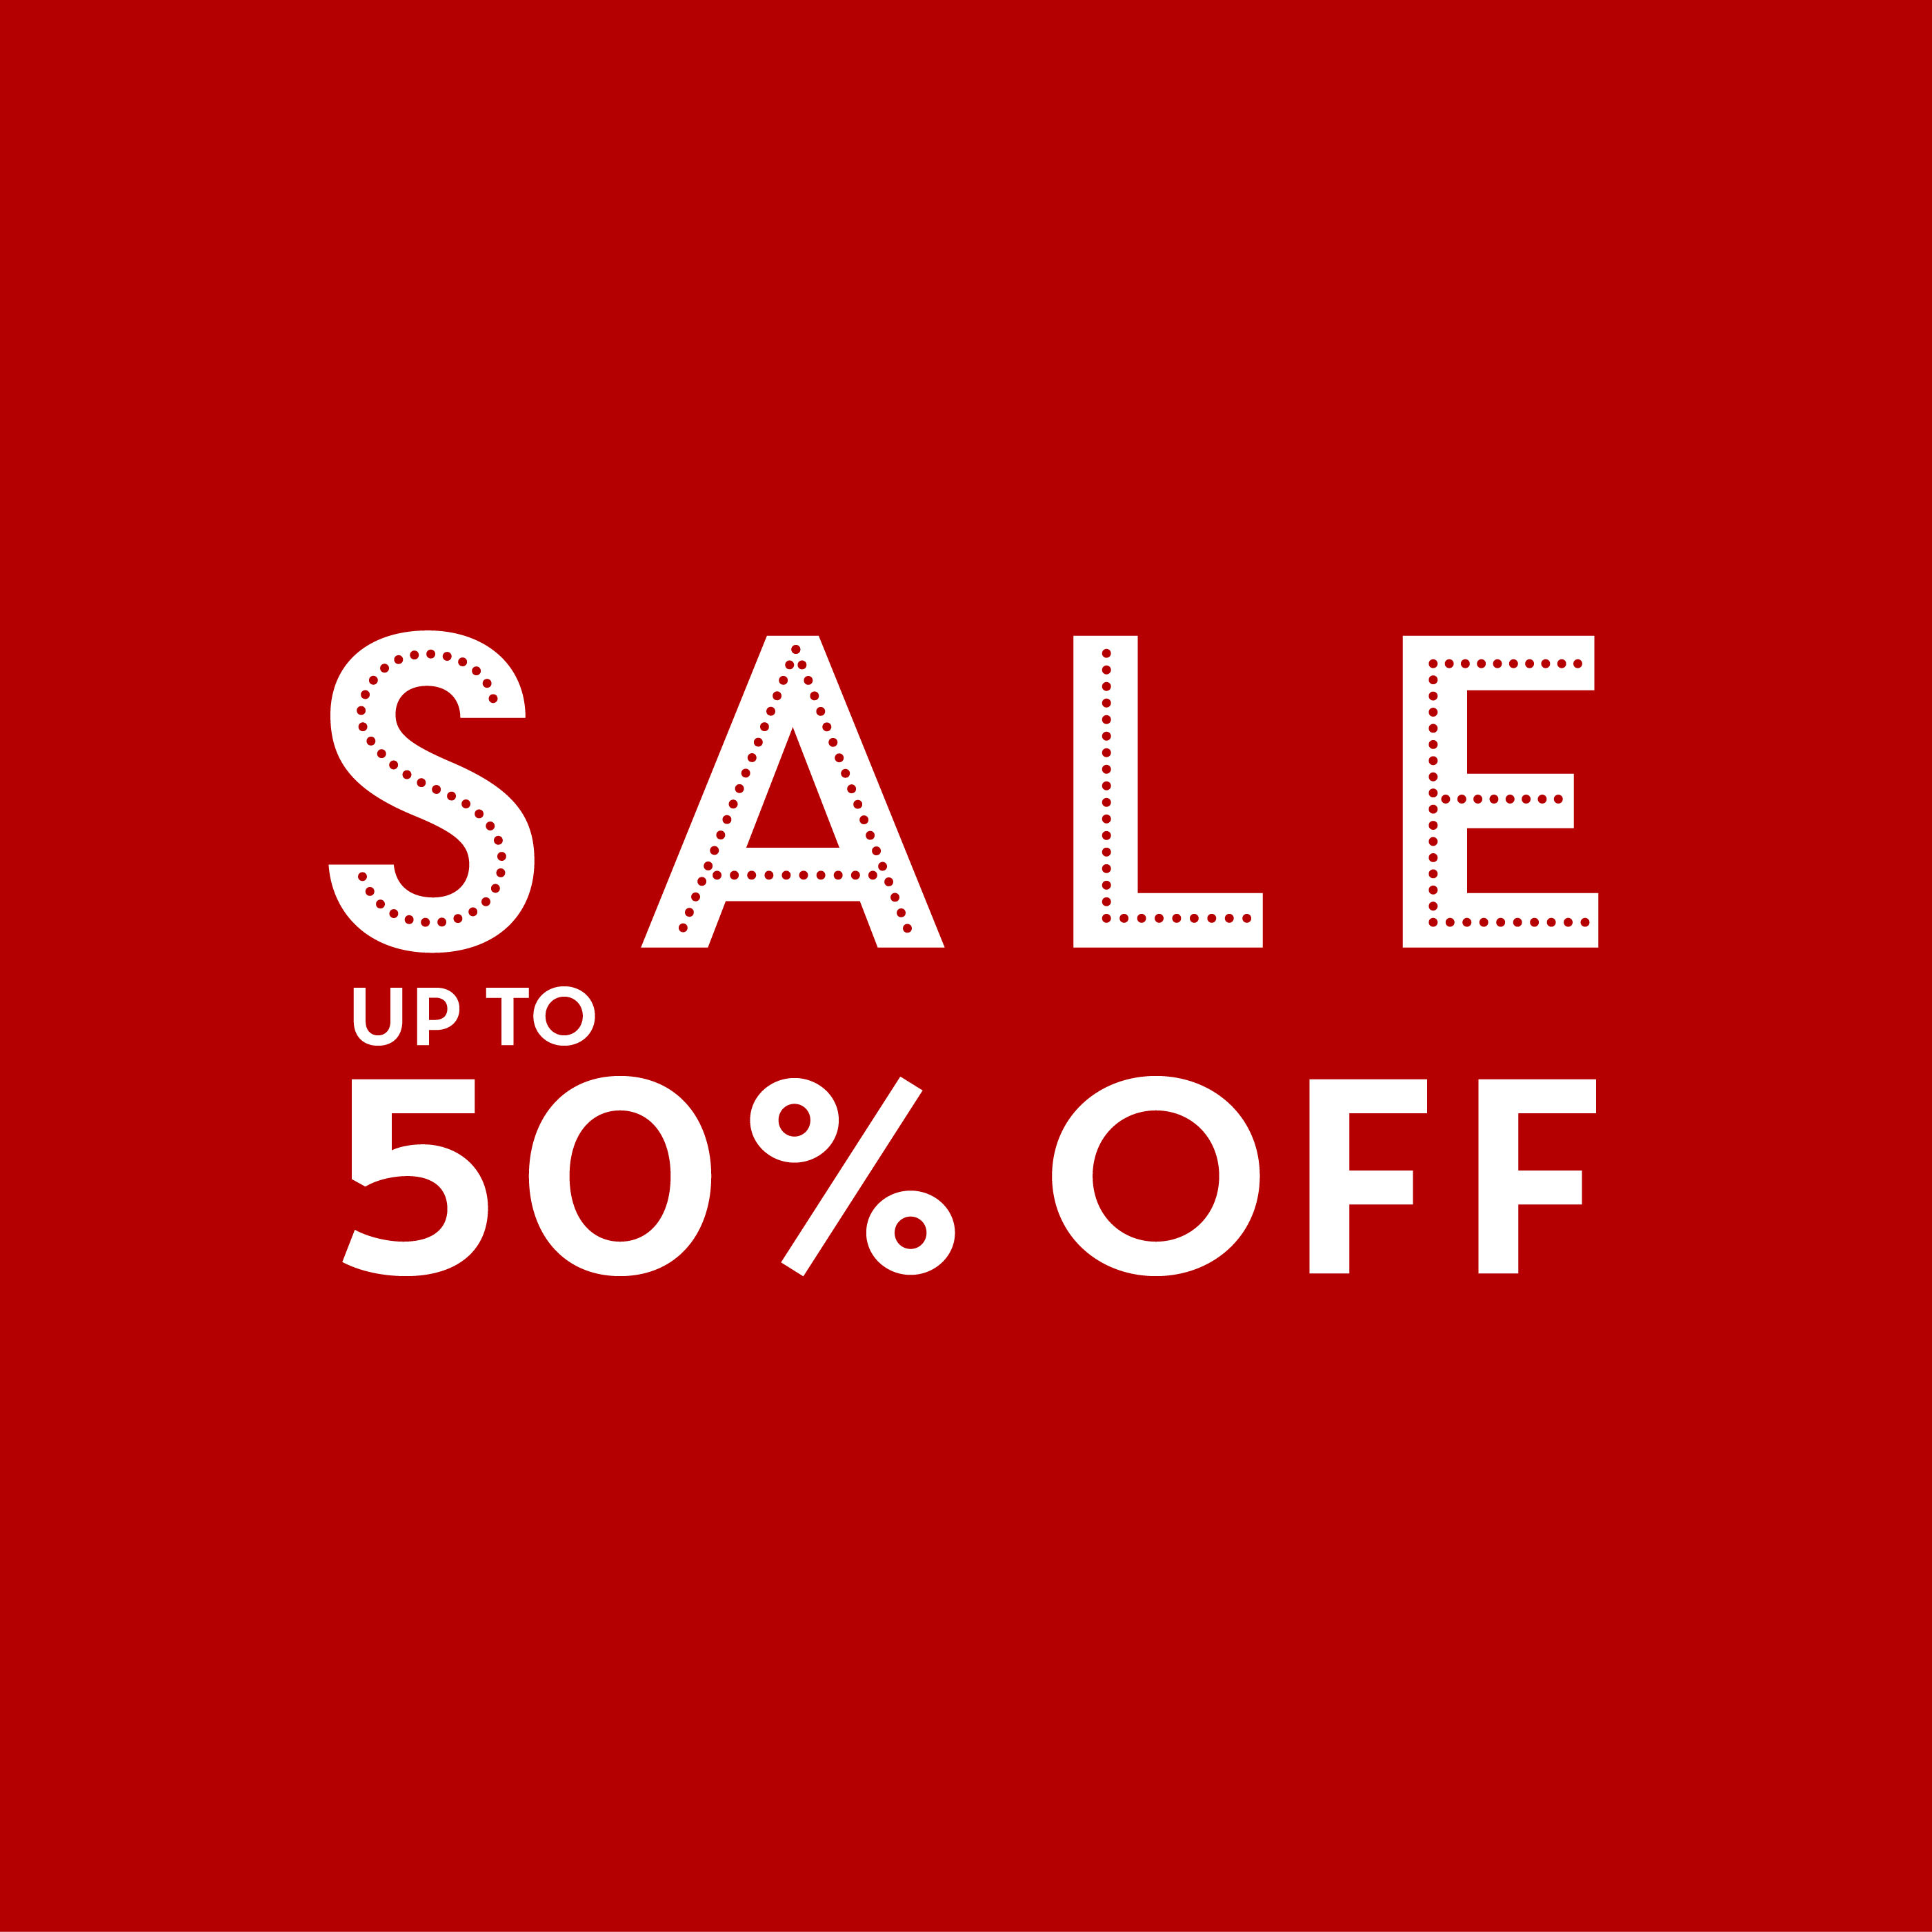 More items added - sale up to 50% off!